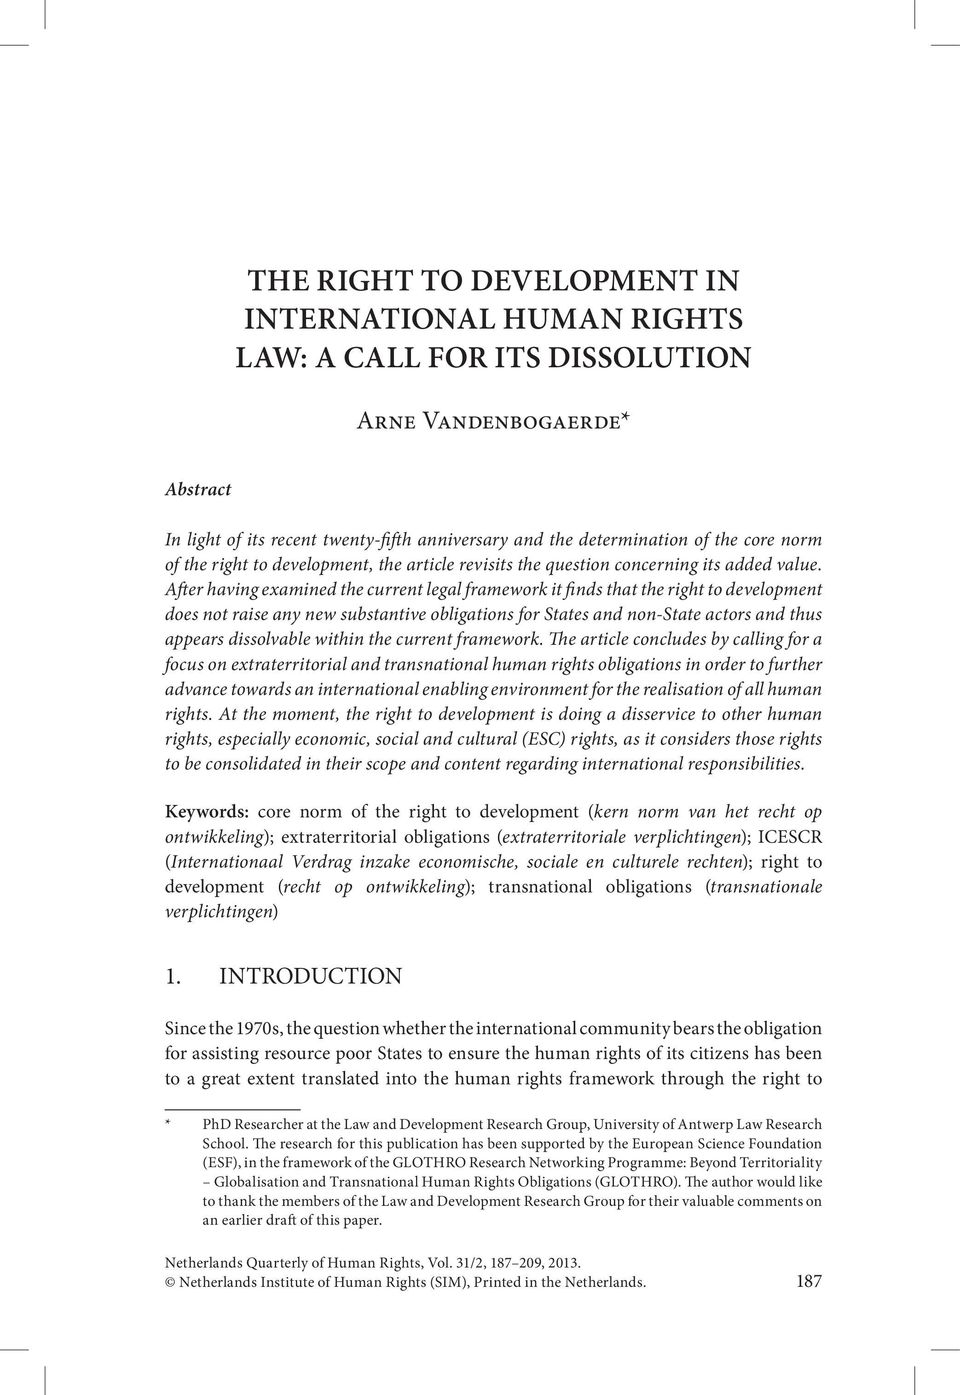 After having examined the current legal framework it finds that the right to development does not raise any new substantive obligations for States and non-state actors and thus appears dissolvable